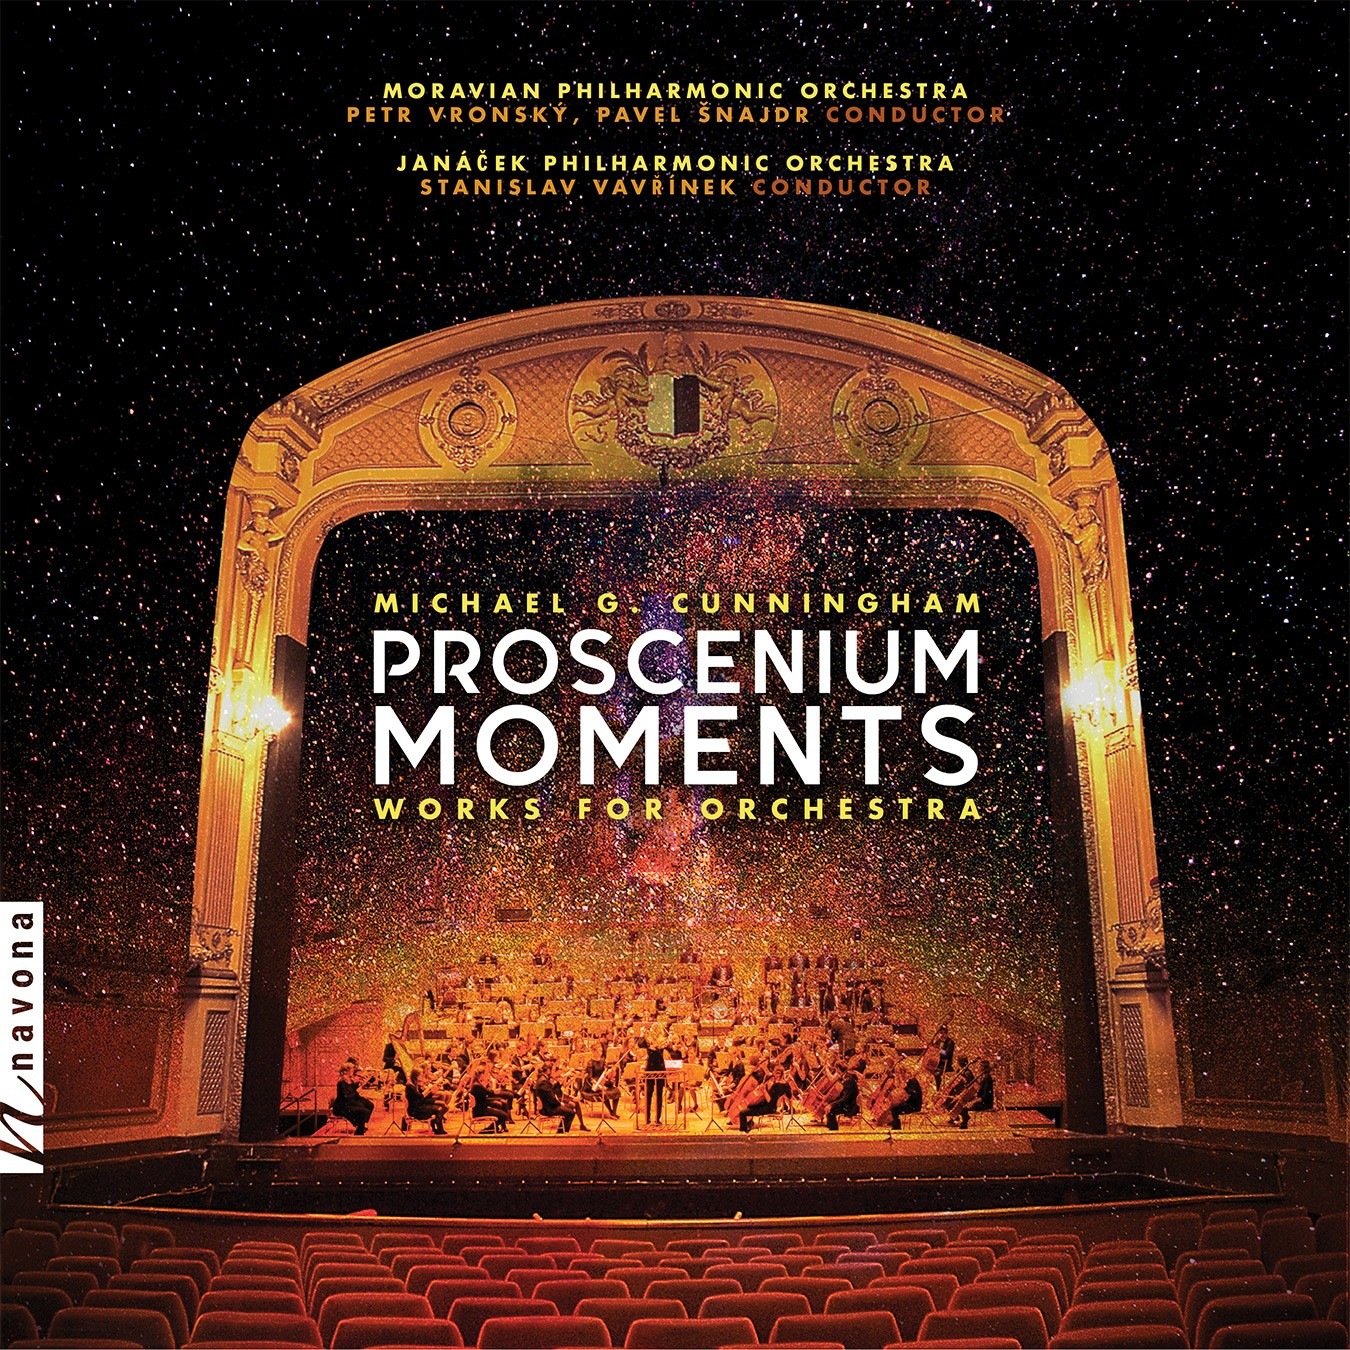 PROSCENIUM MOMENTS - Michael G. Cunningham - Album Cover